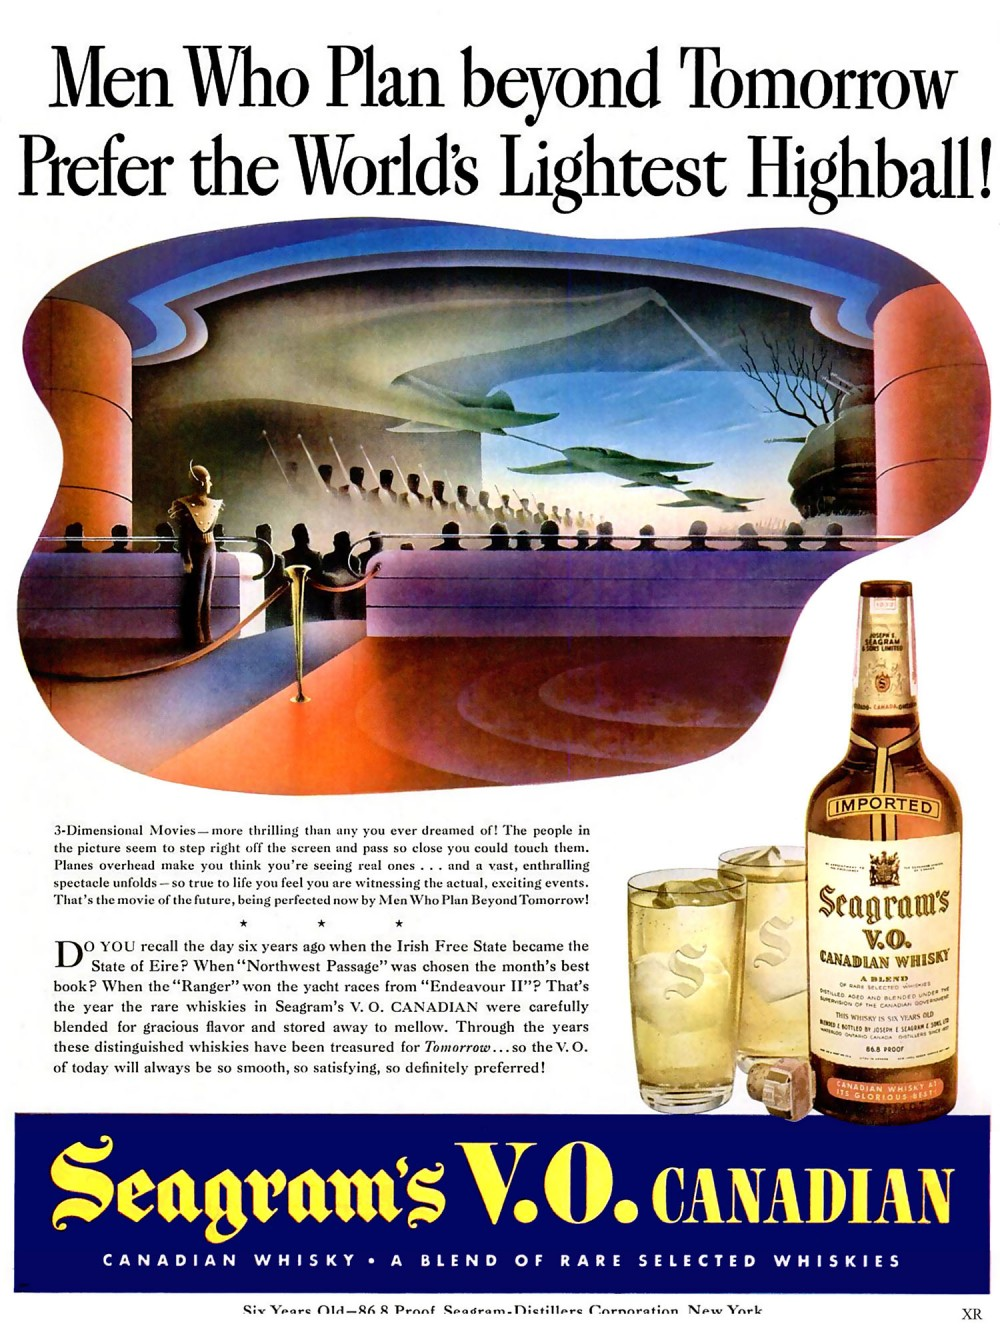 1943 - MWPBT Prefer the World's Lightest Highball 1